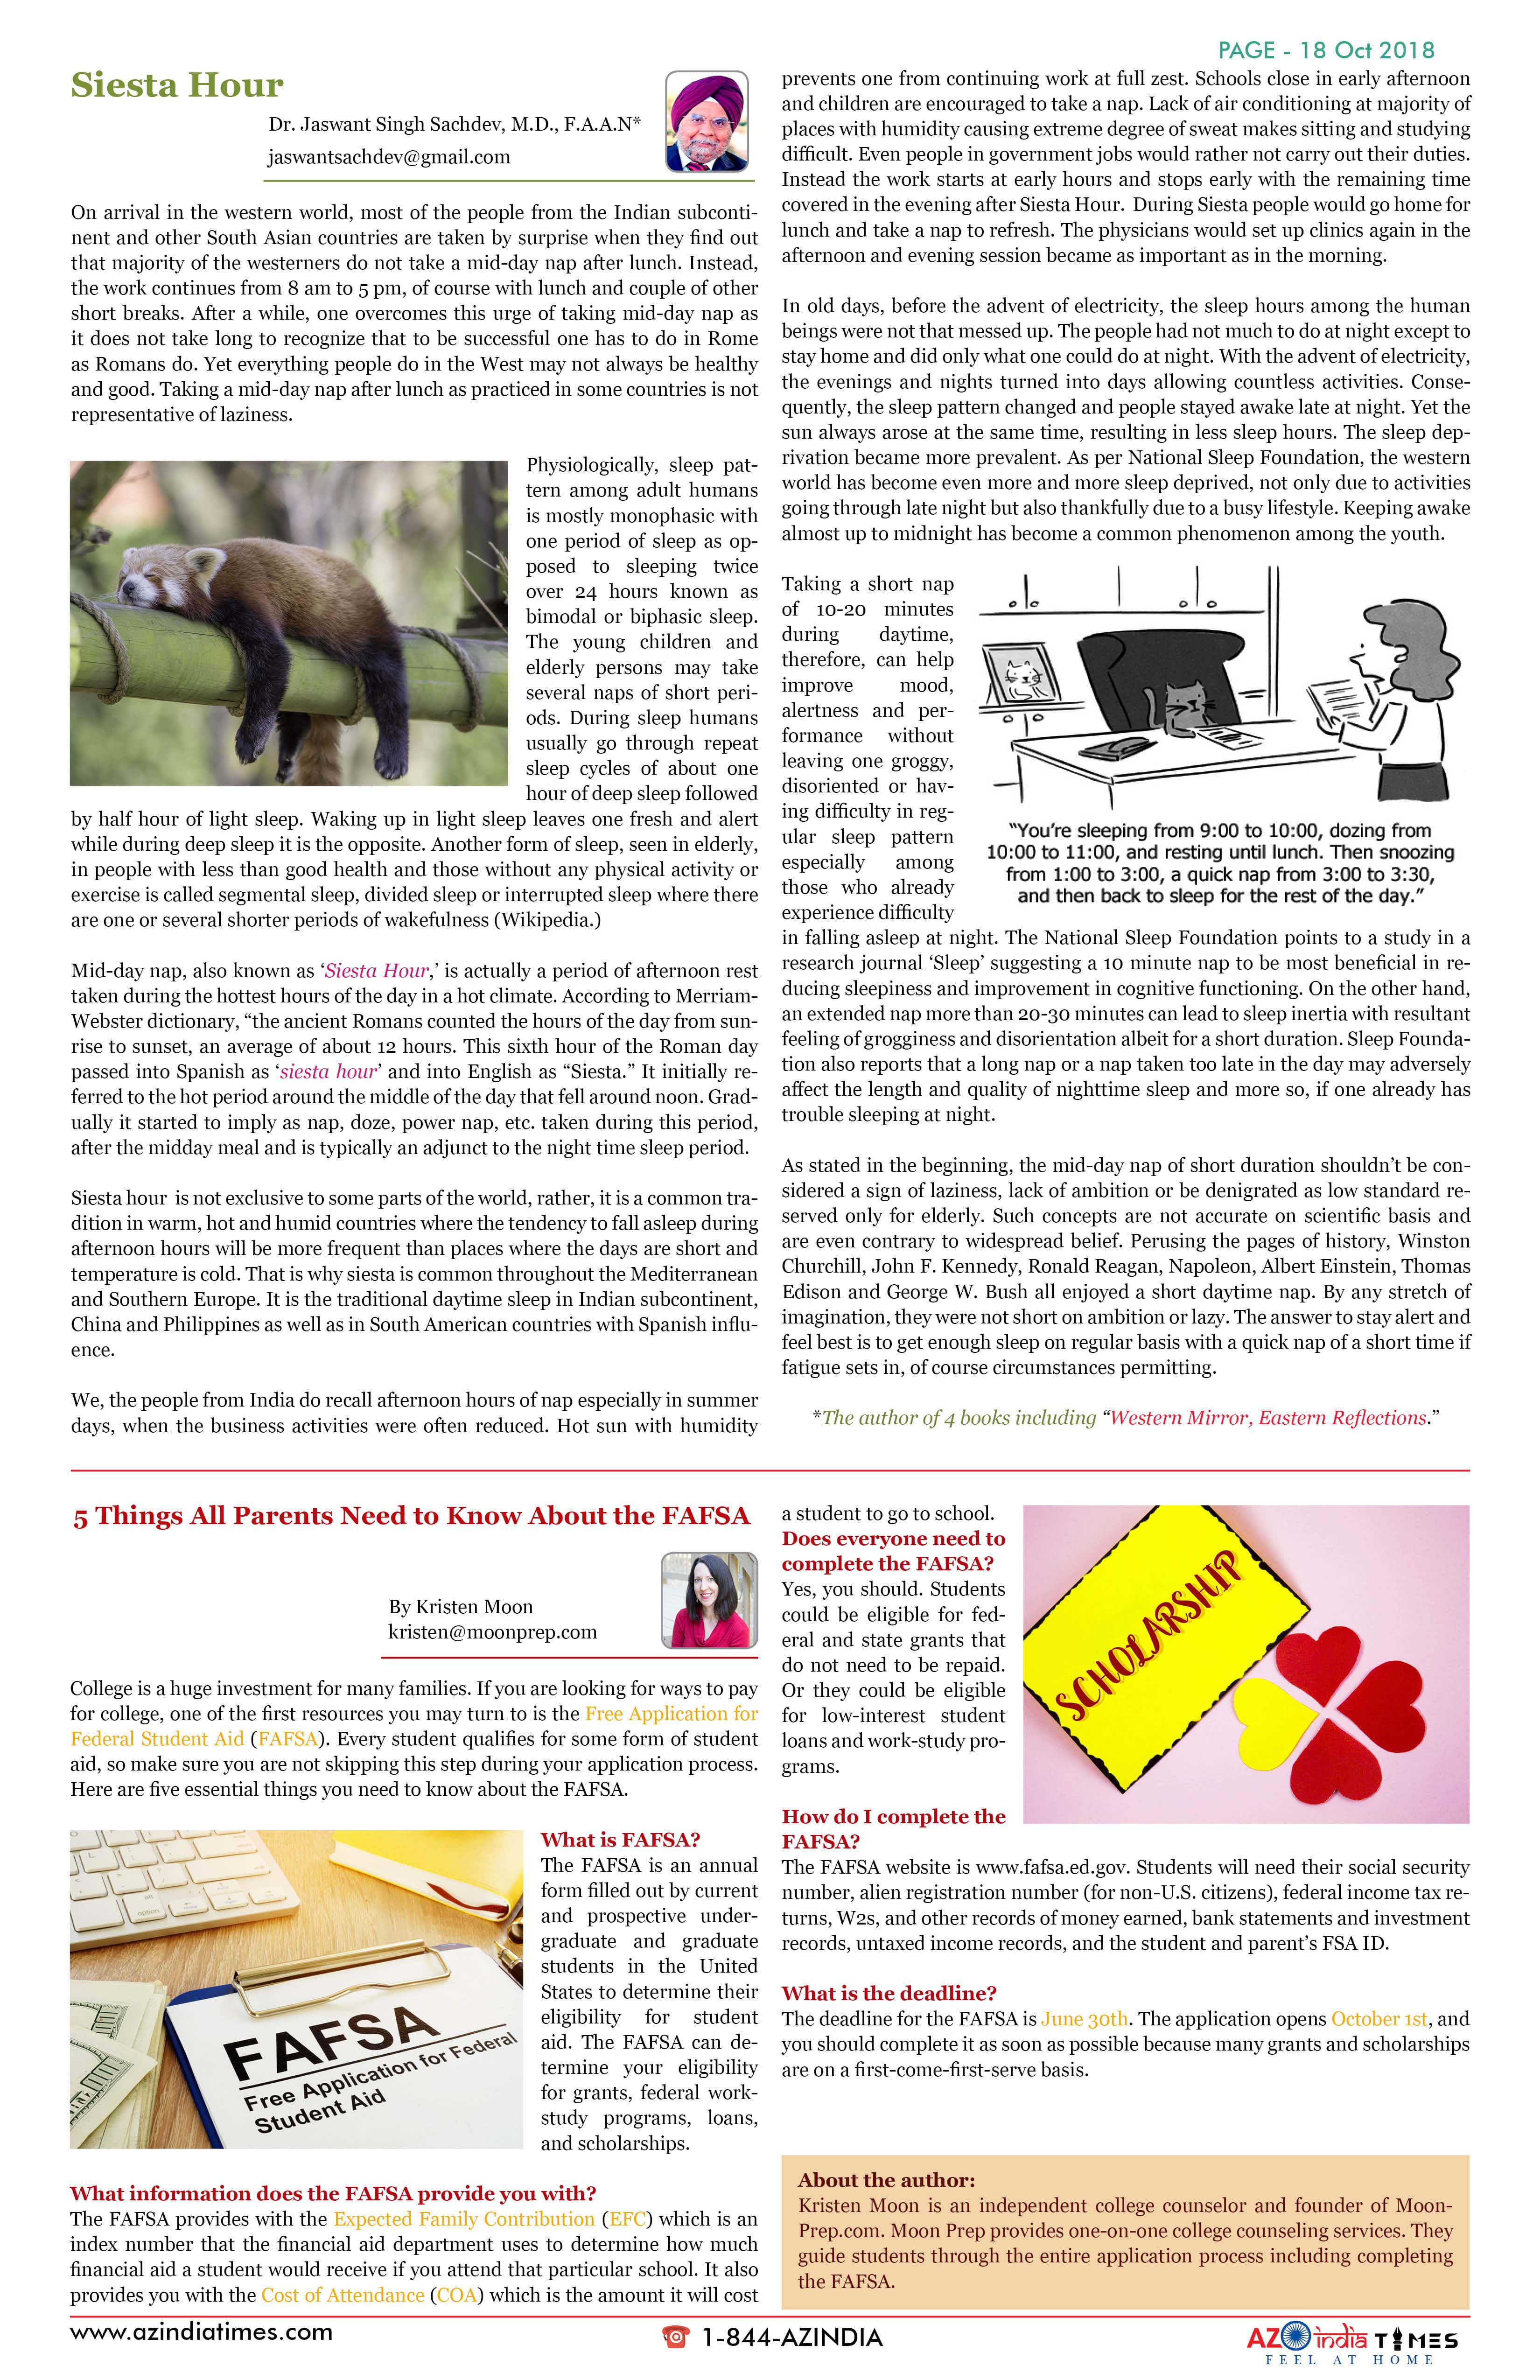 AZINDIA TIMES OCTOBER EDITION18